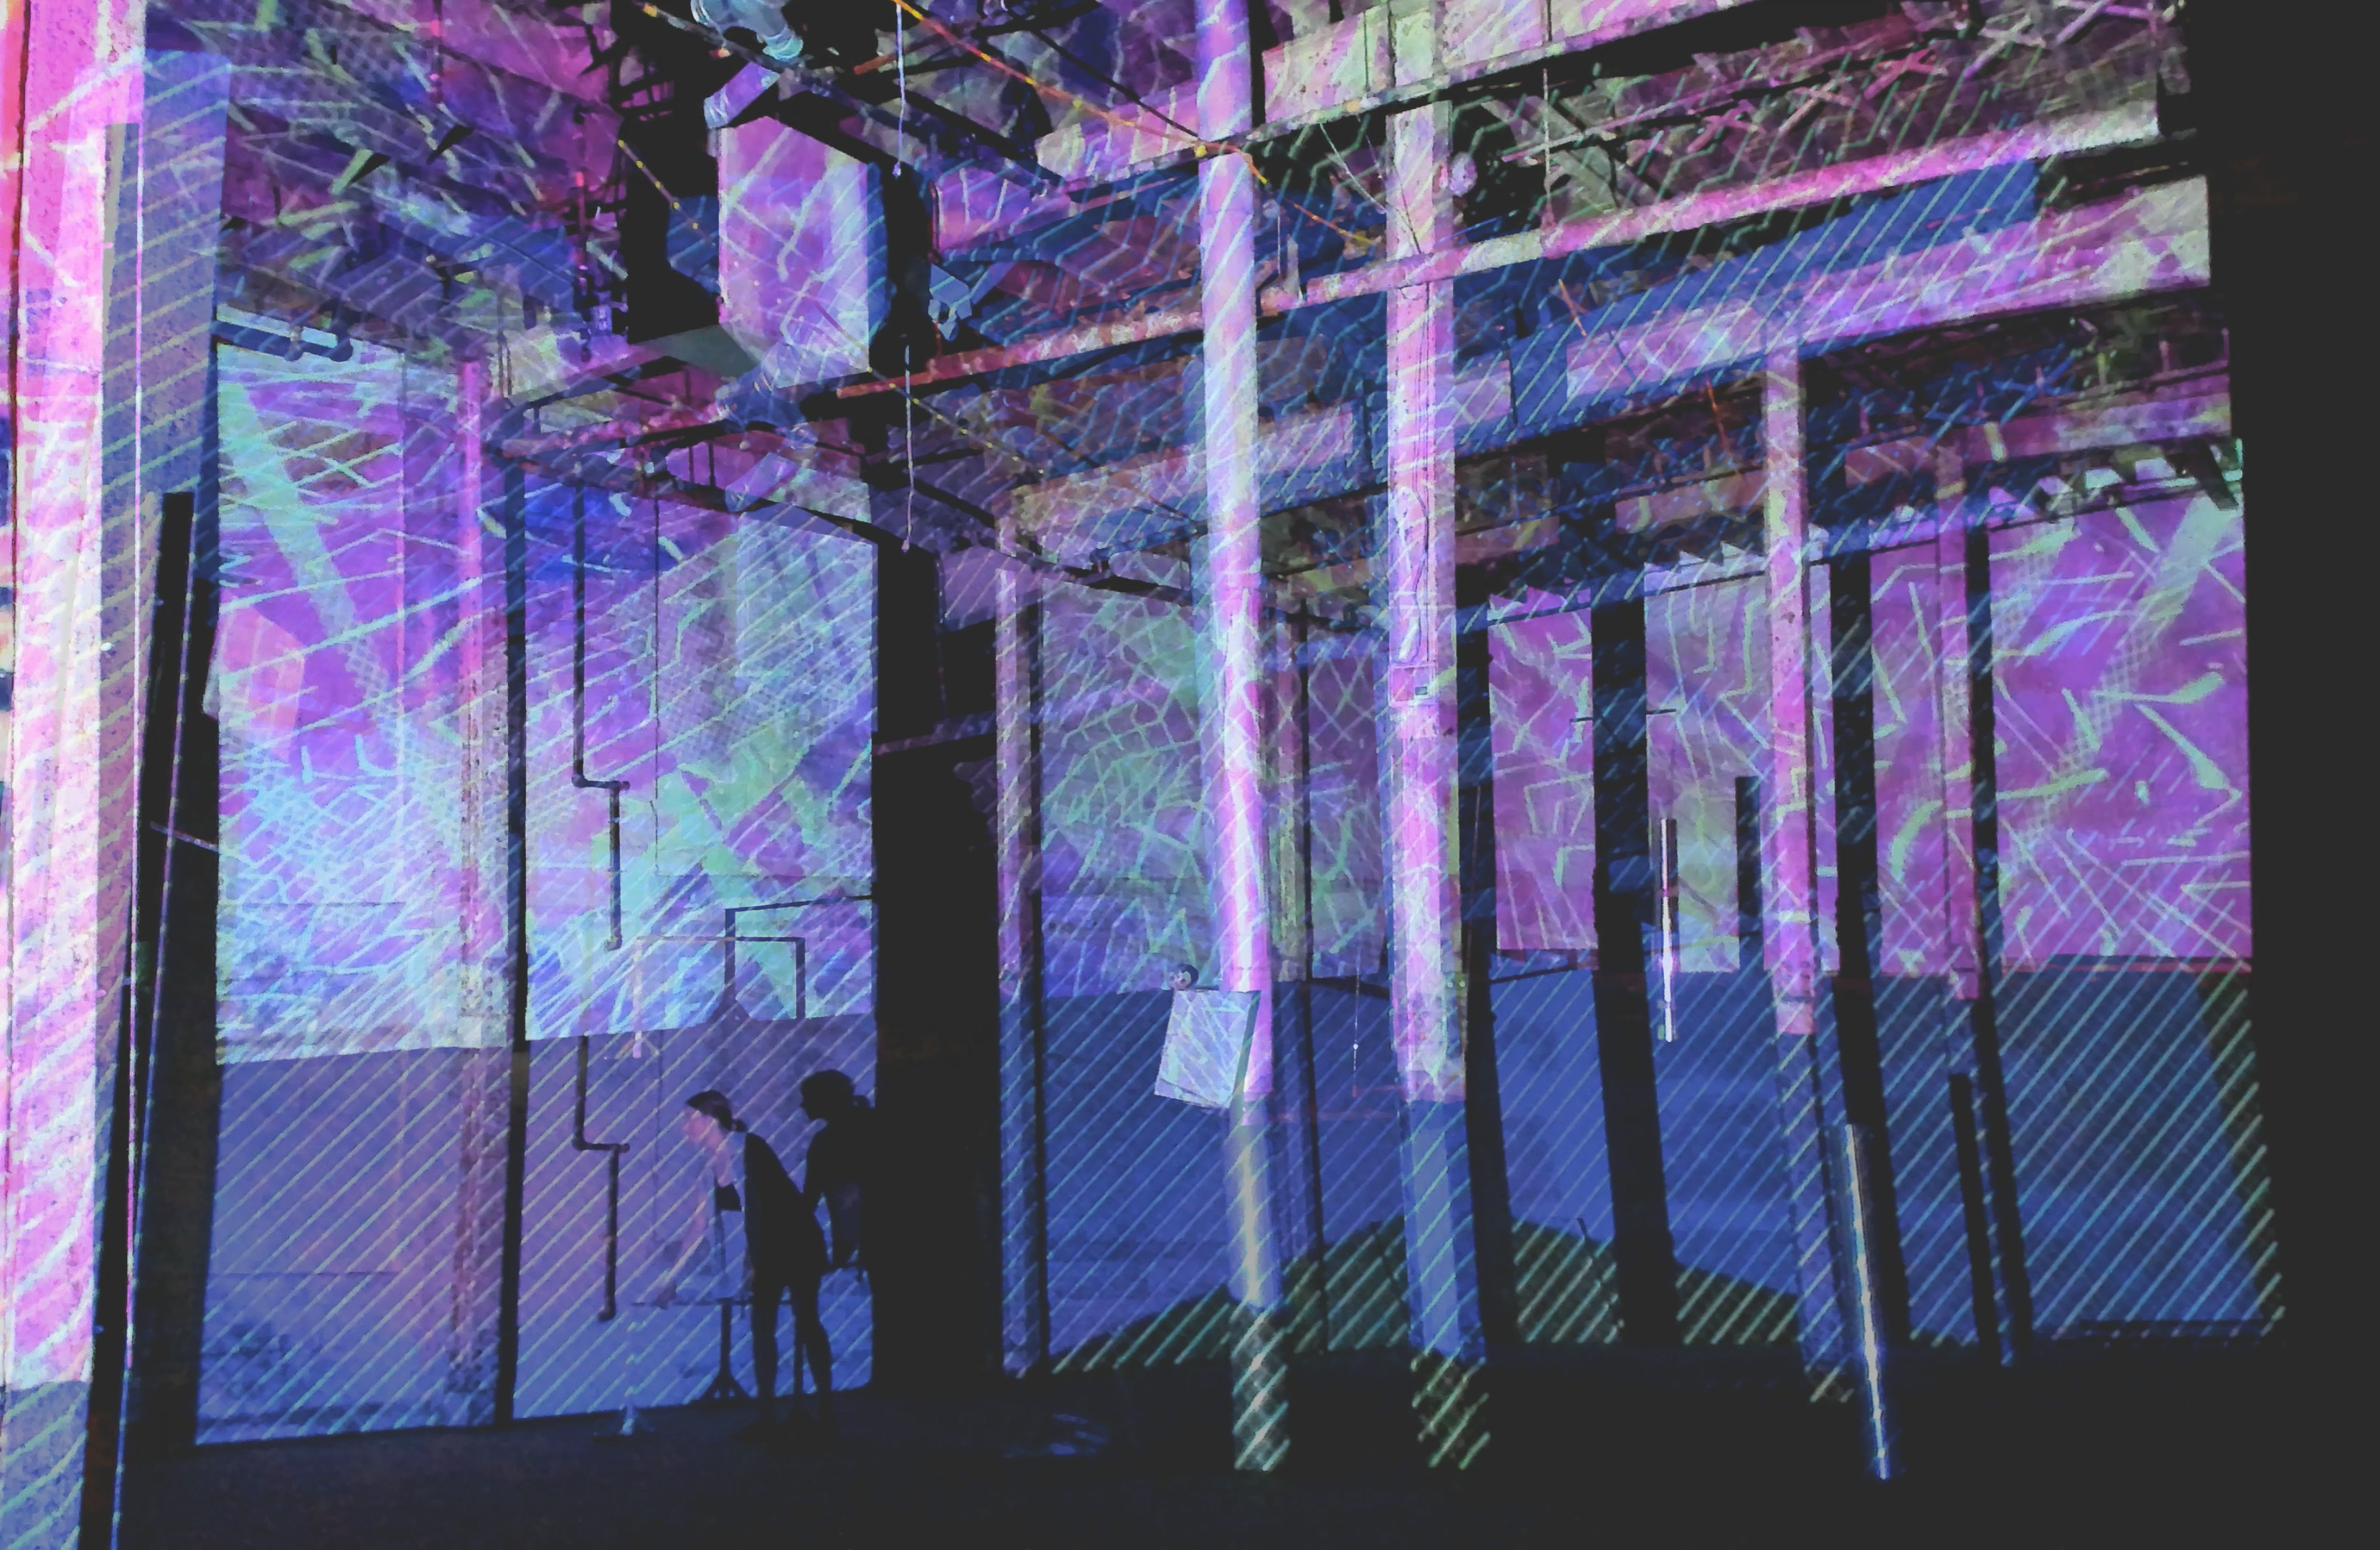 A person standing in an industrial room with pillars with a projection covering the walls